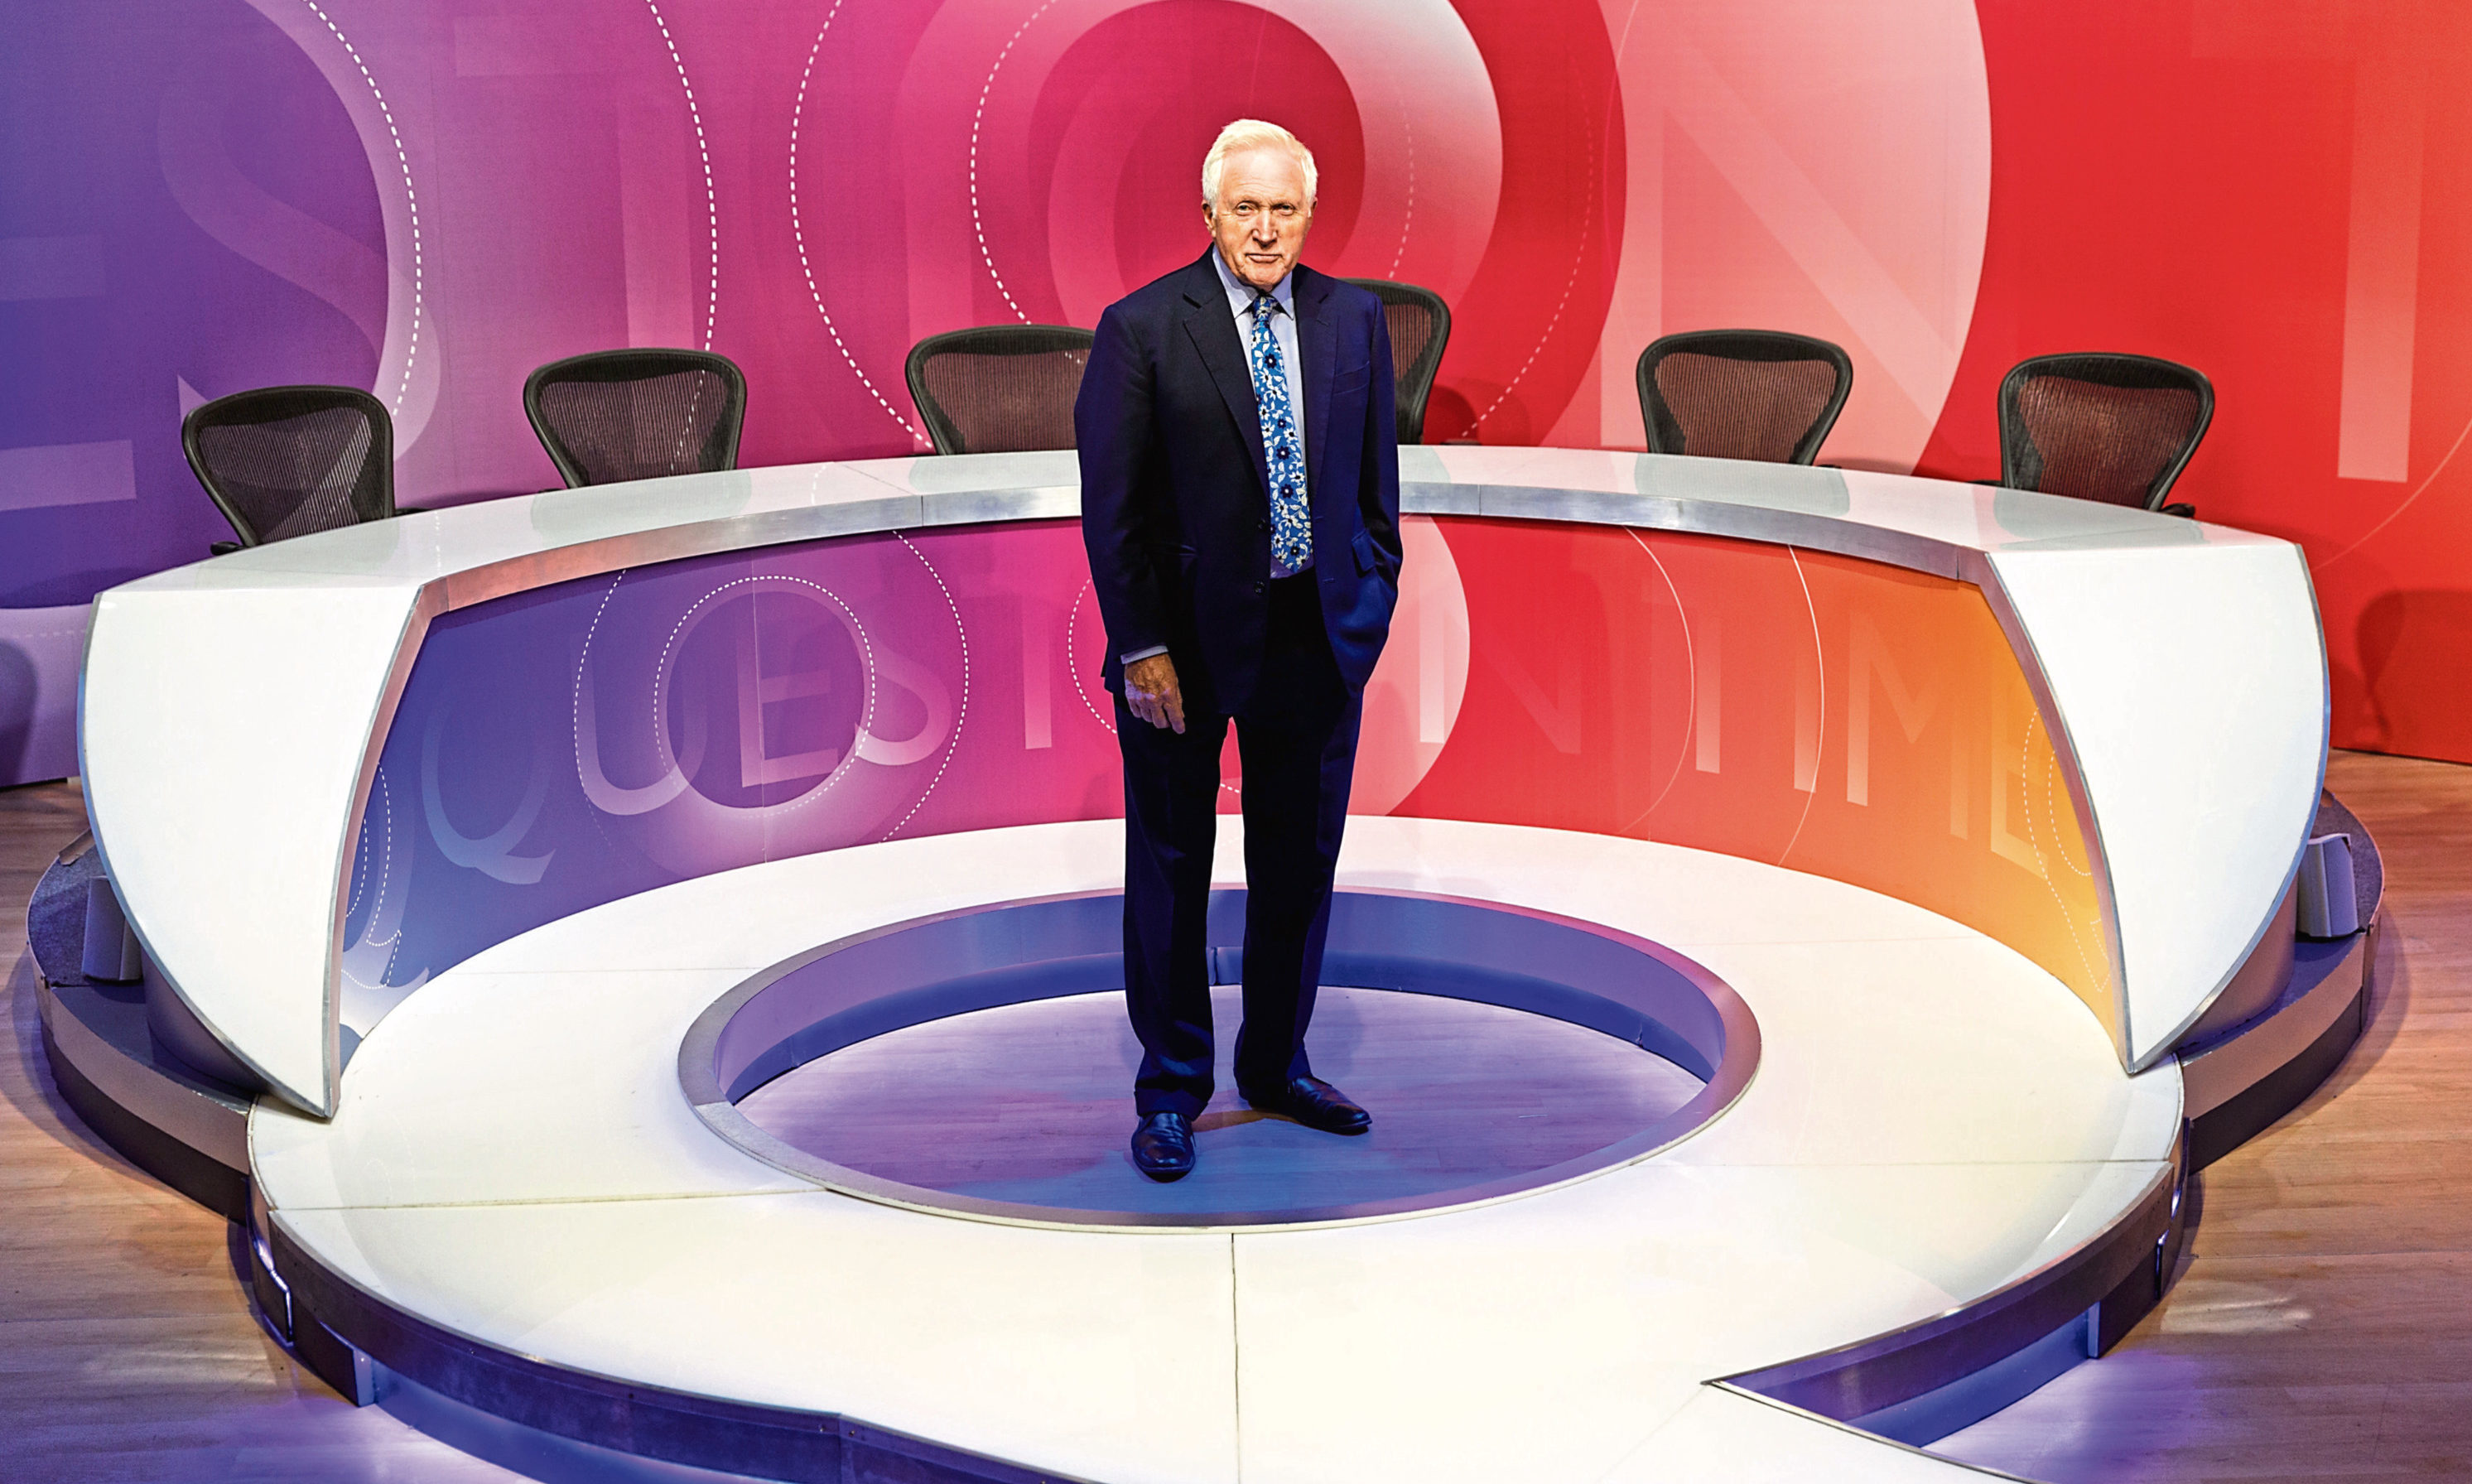 David Dimbleby, host of BBC's Question Time